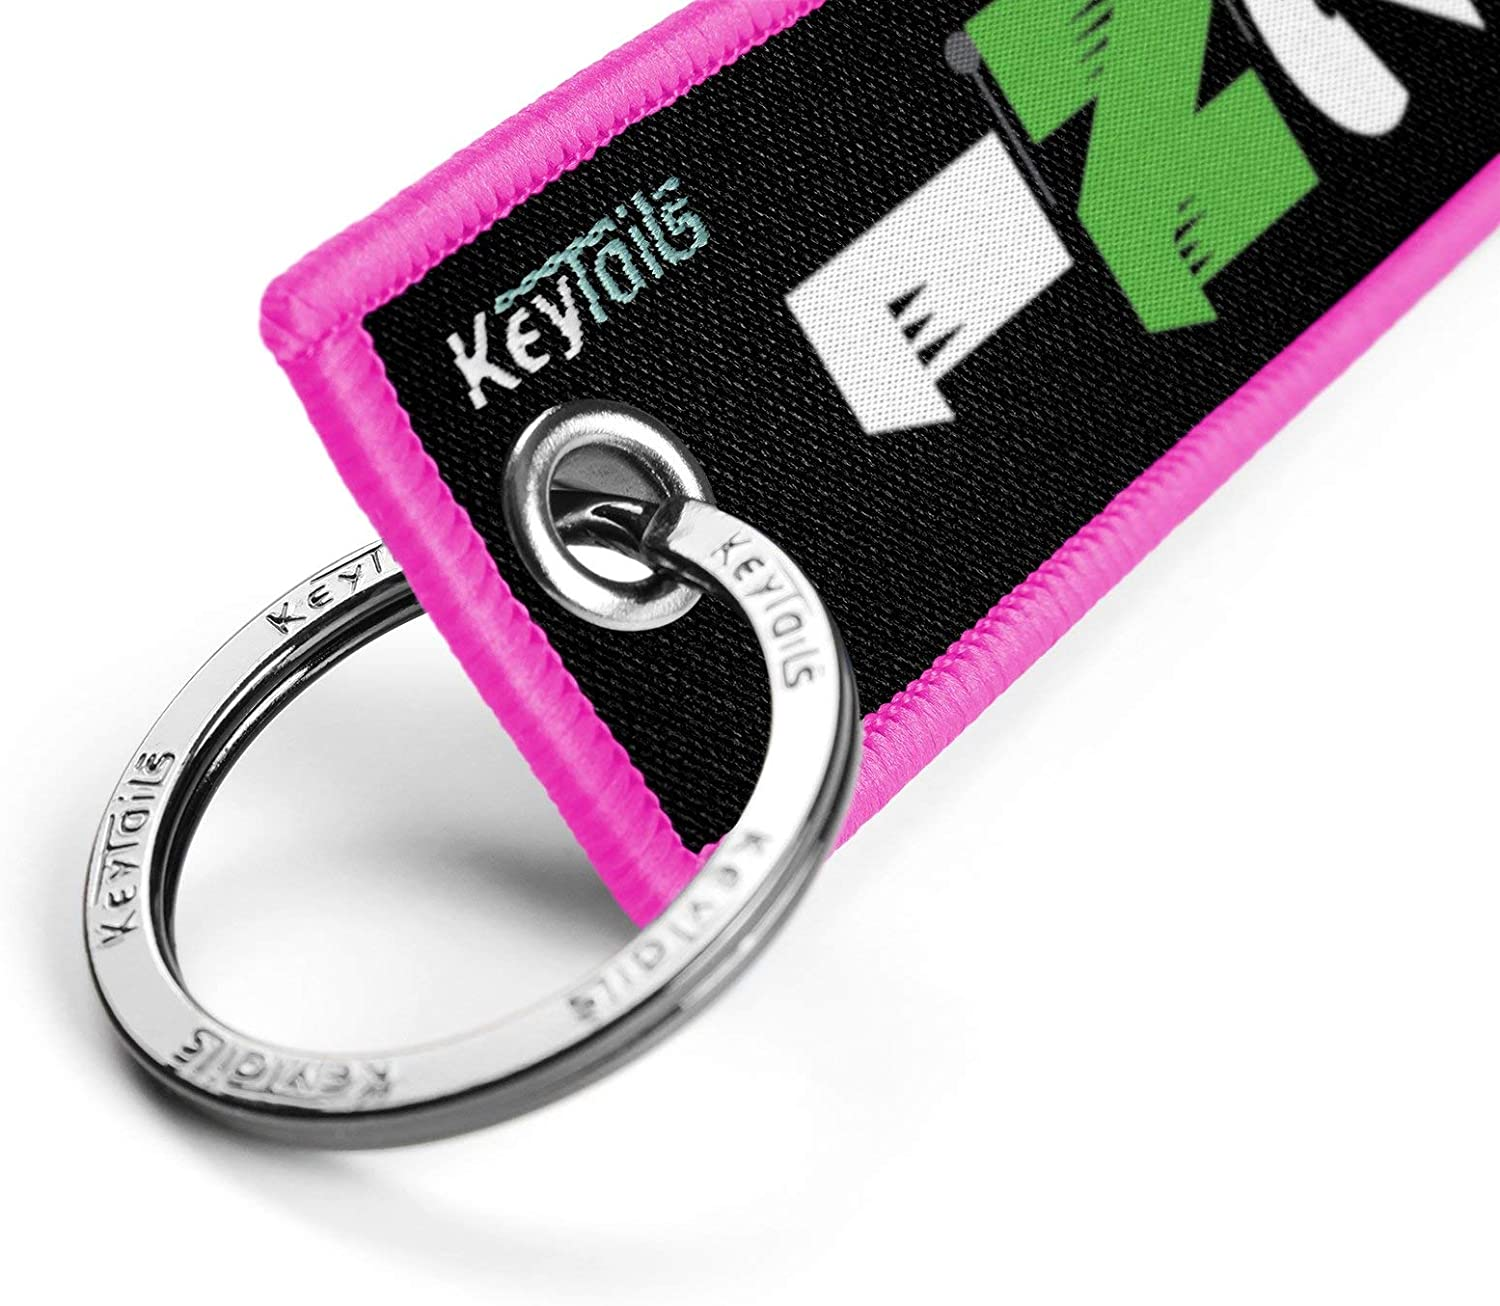 1 Down 5 Up - 65432N1 Sportbike KEYTAILS Keychains Premium Quality Key Tag for Motorcycle